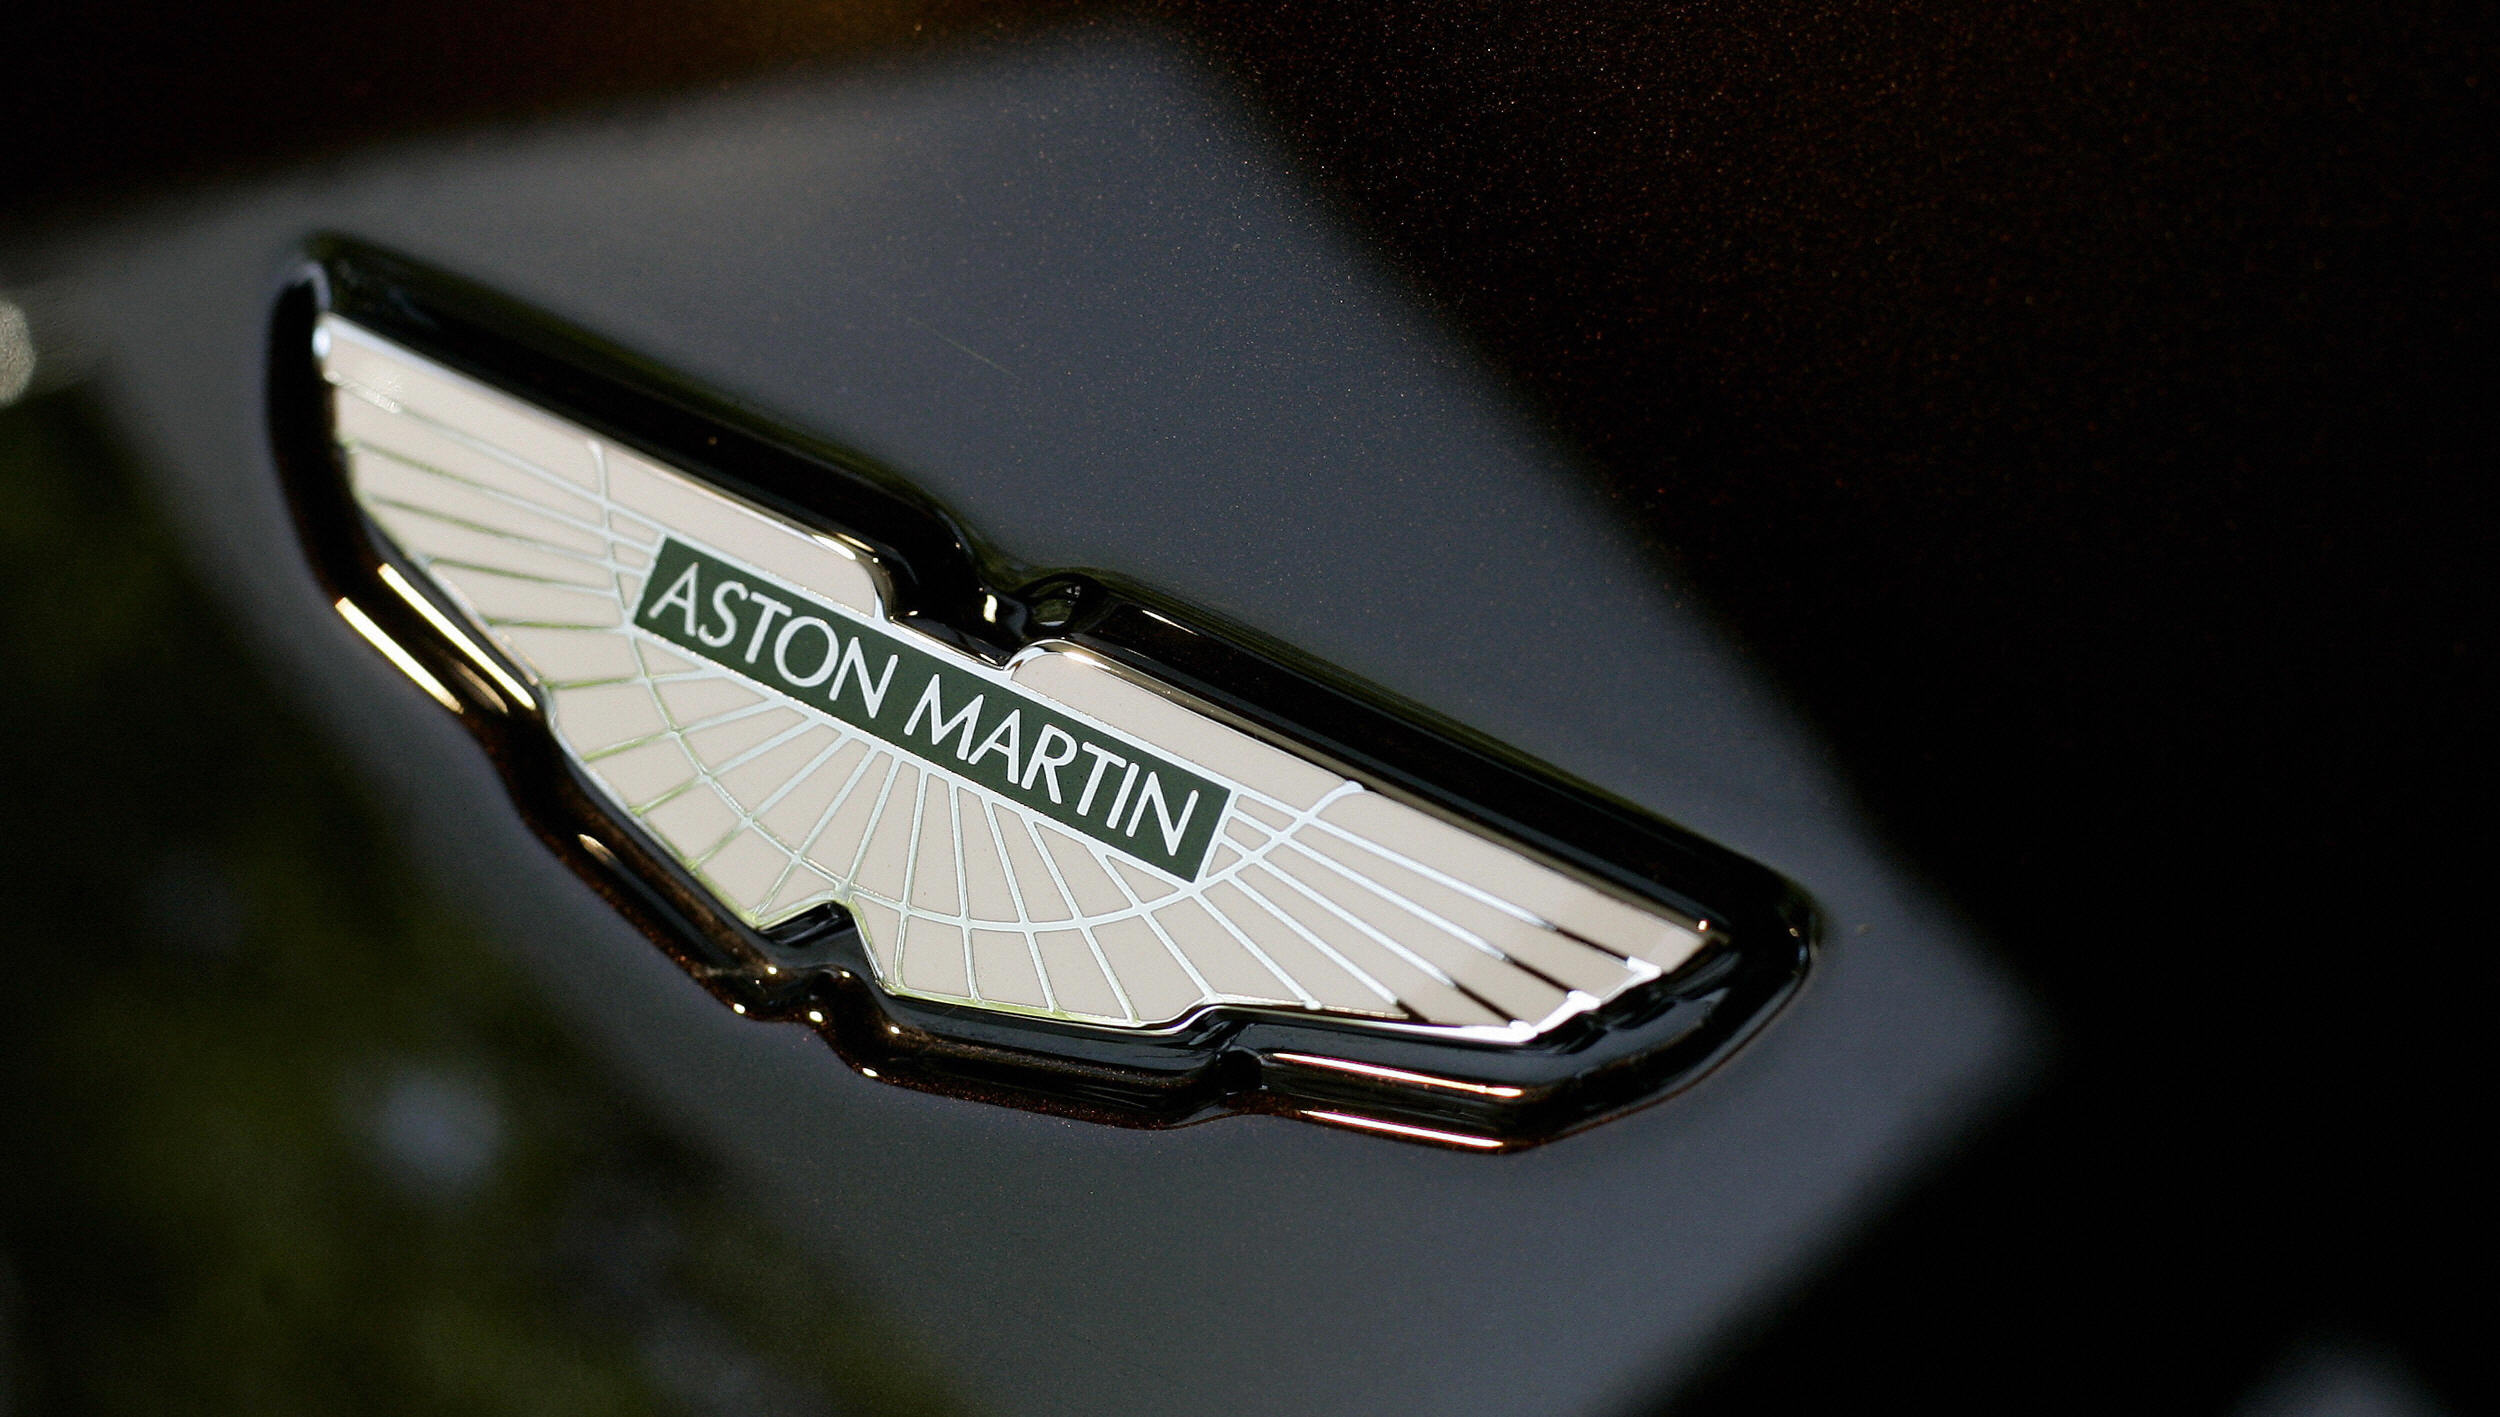 Aston Martin in hedge funds' cross hairs as short sellers target its debt